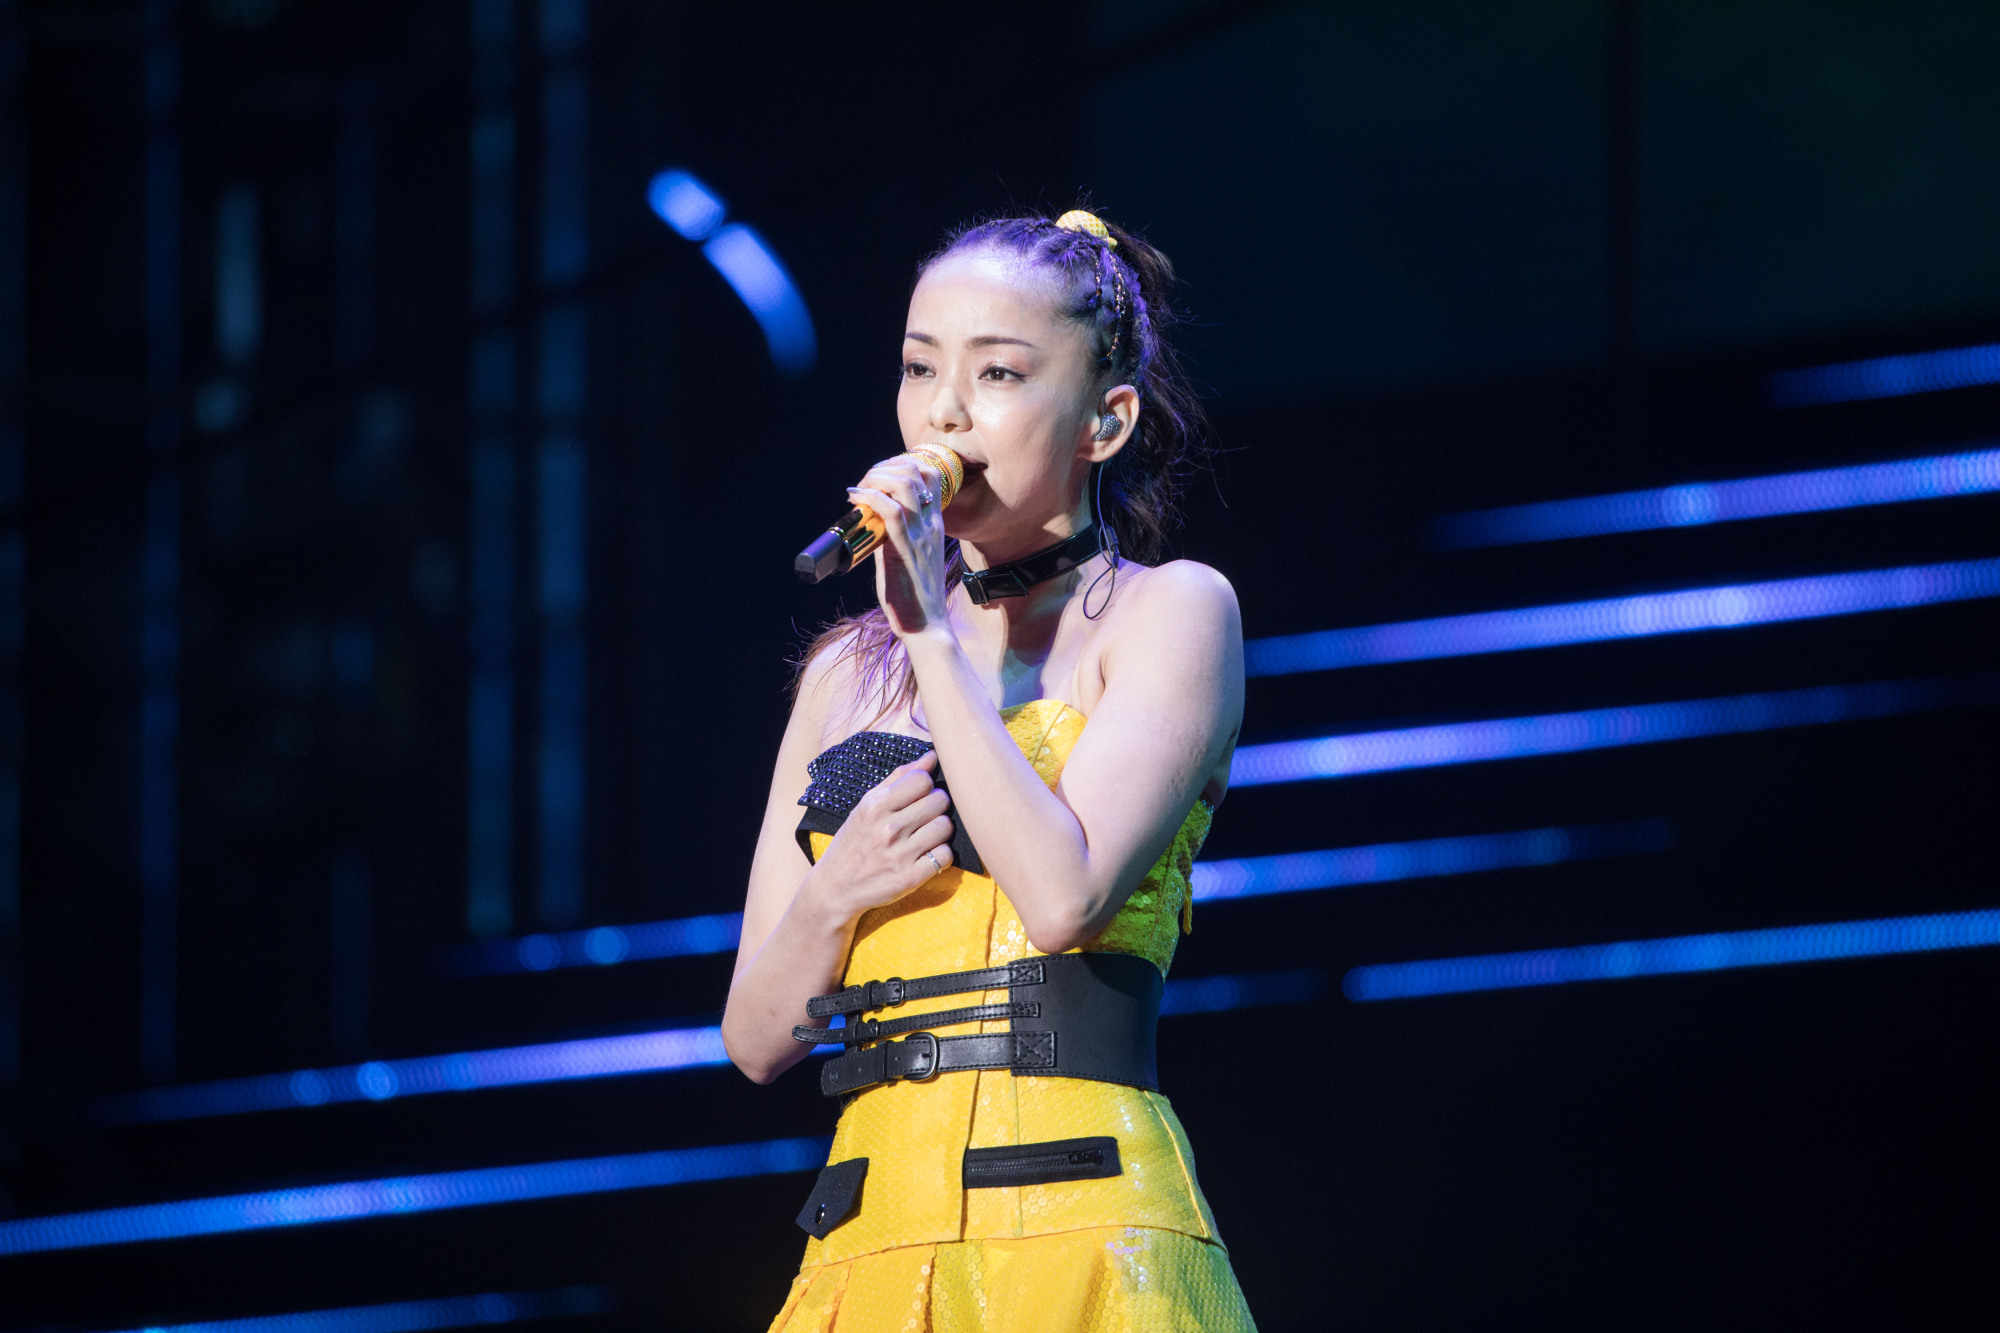 Farewell tour: Namie Amuro performs during a concert in Shenzhen, China, in March ahead of her retirement. The star officially retires on Sept. 16. | LI LEWEI — IMAGINECHINA